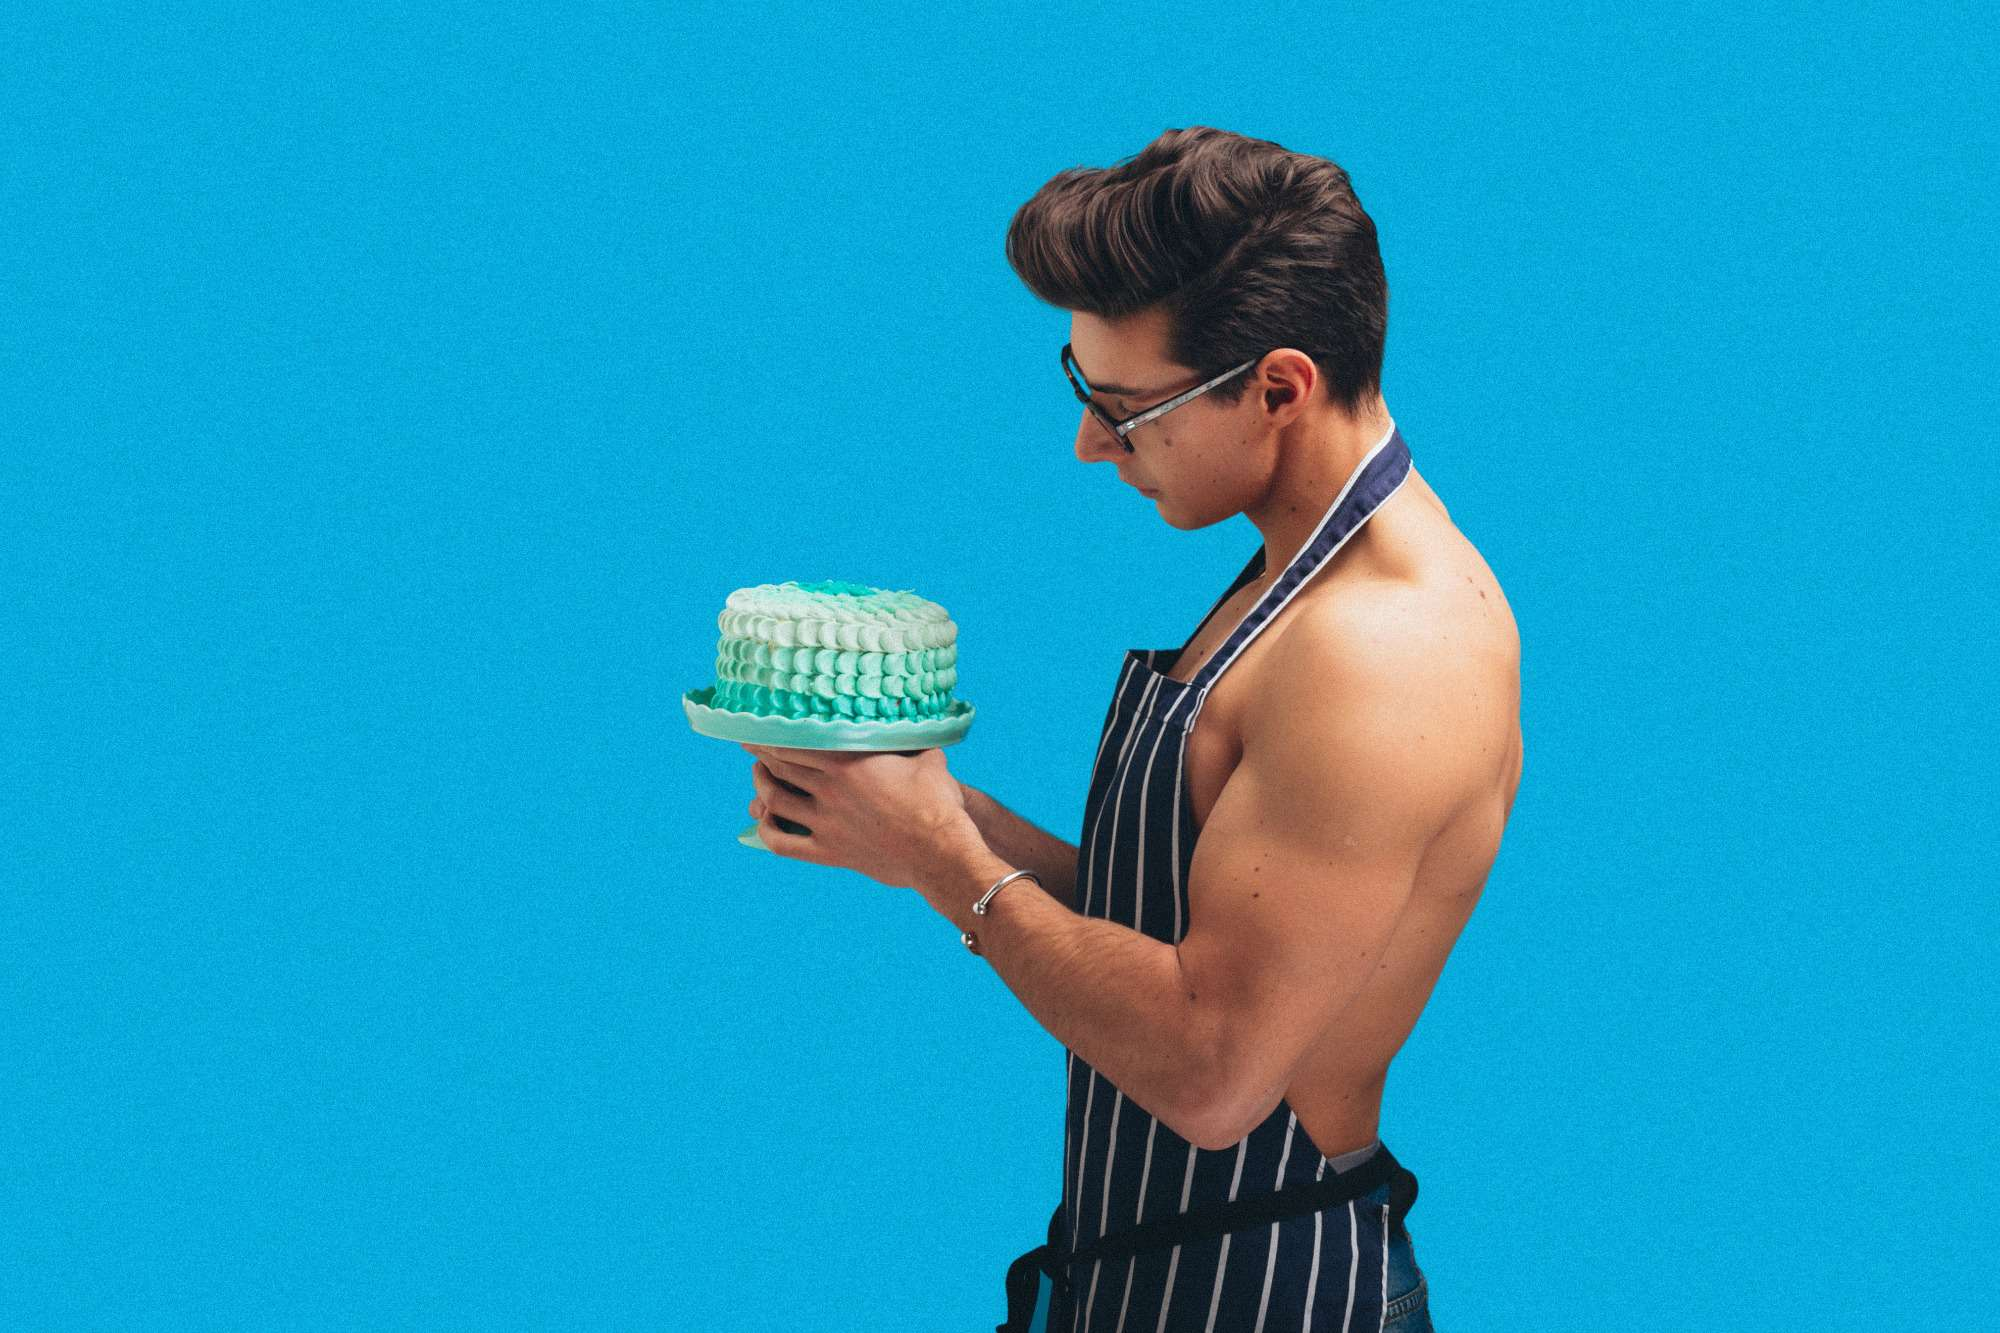 YouTube star and influencer & baker Matt Adlard known as the Topless Baker